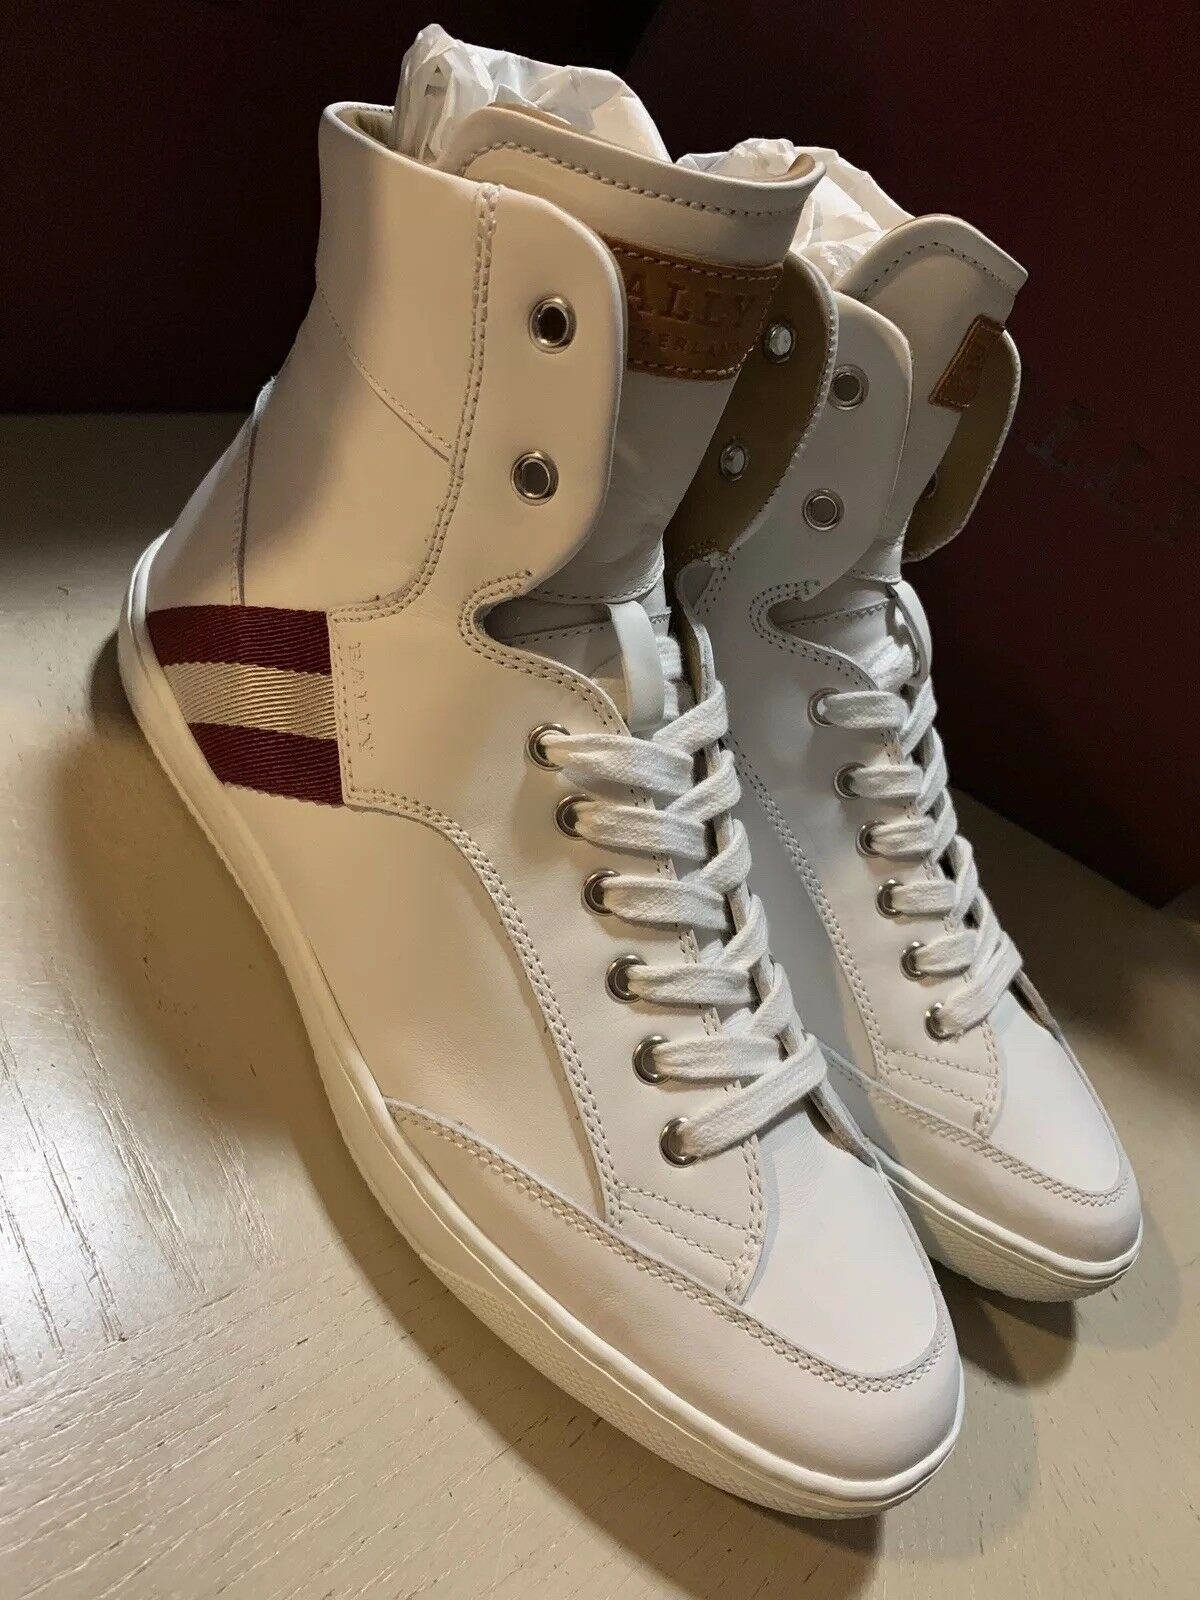 New  Bally Men Oldani Leather High-Top Sneakers White 8 US